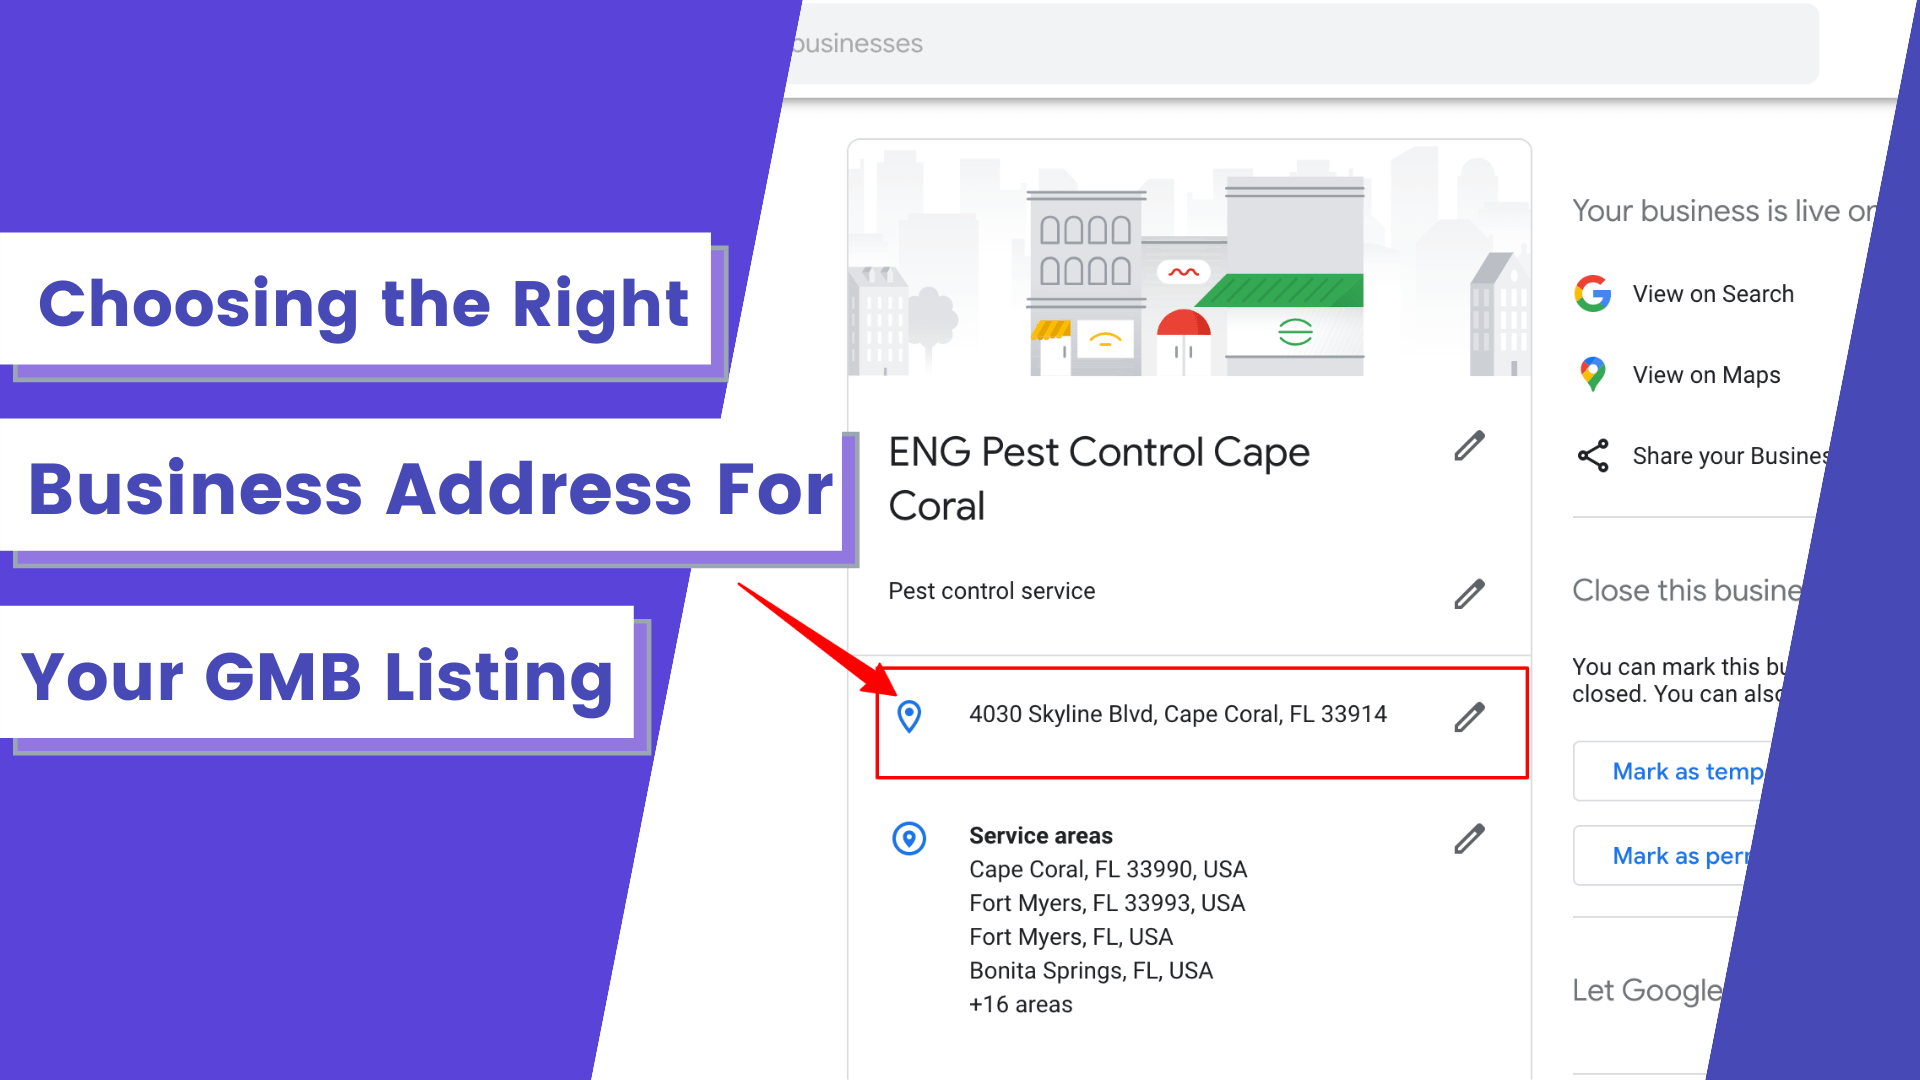 Selecting your GMB listing address